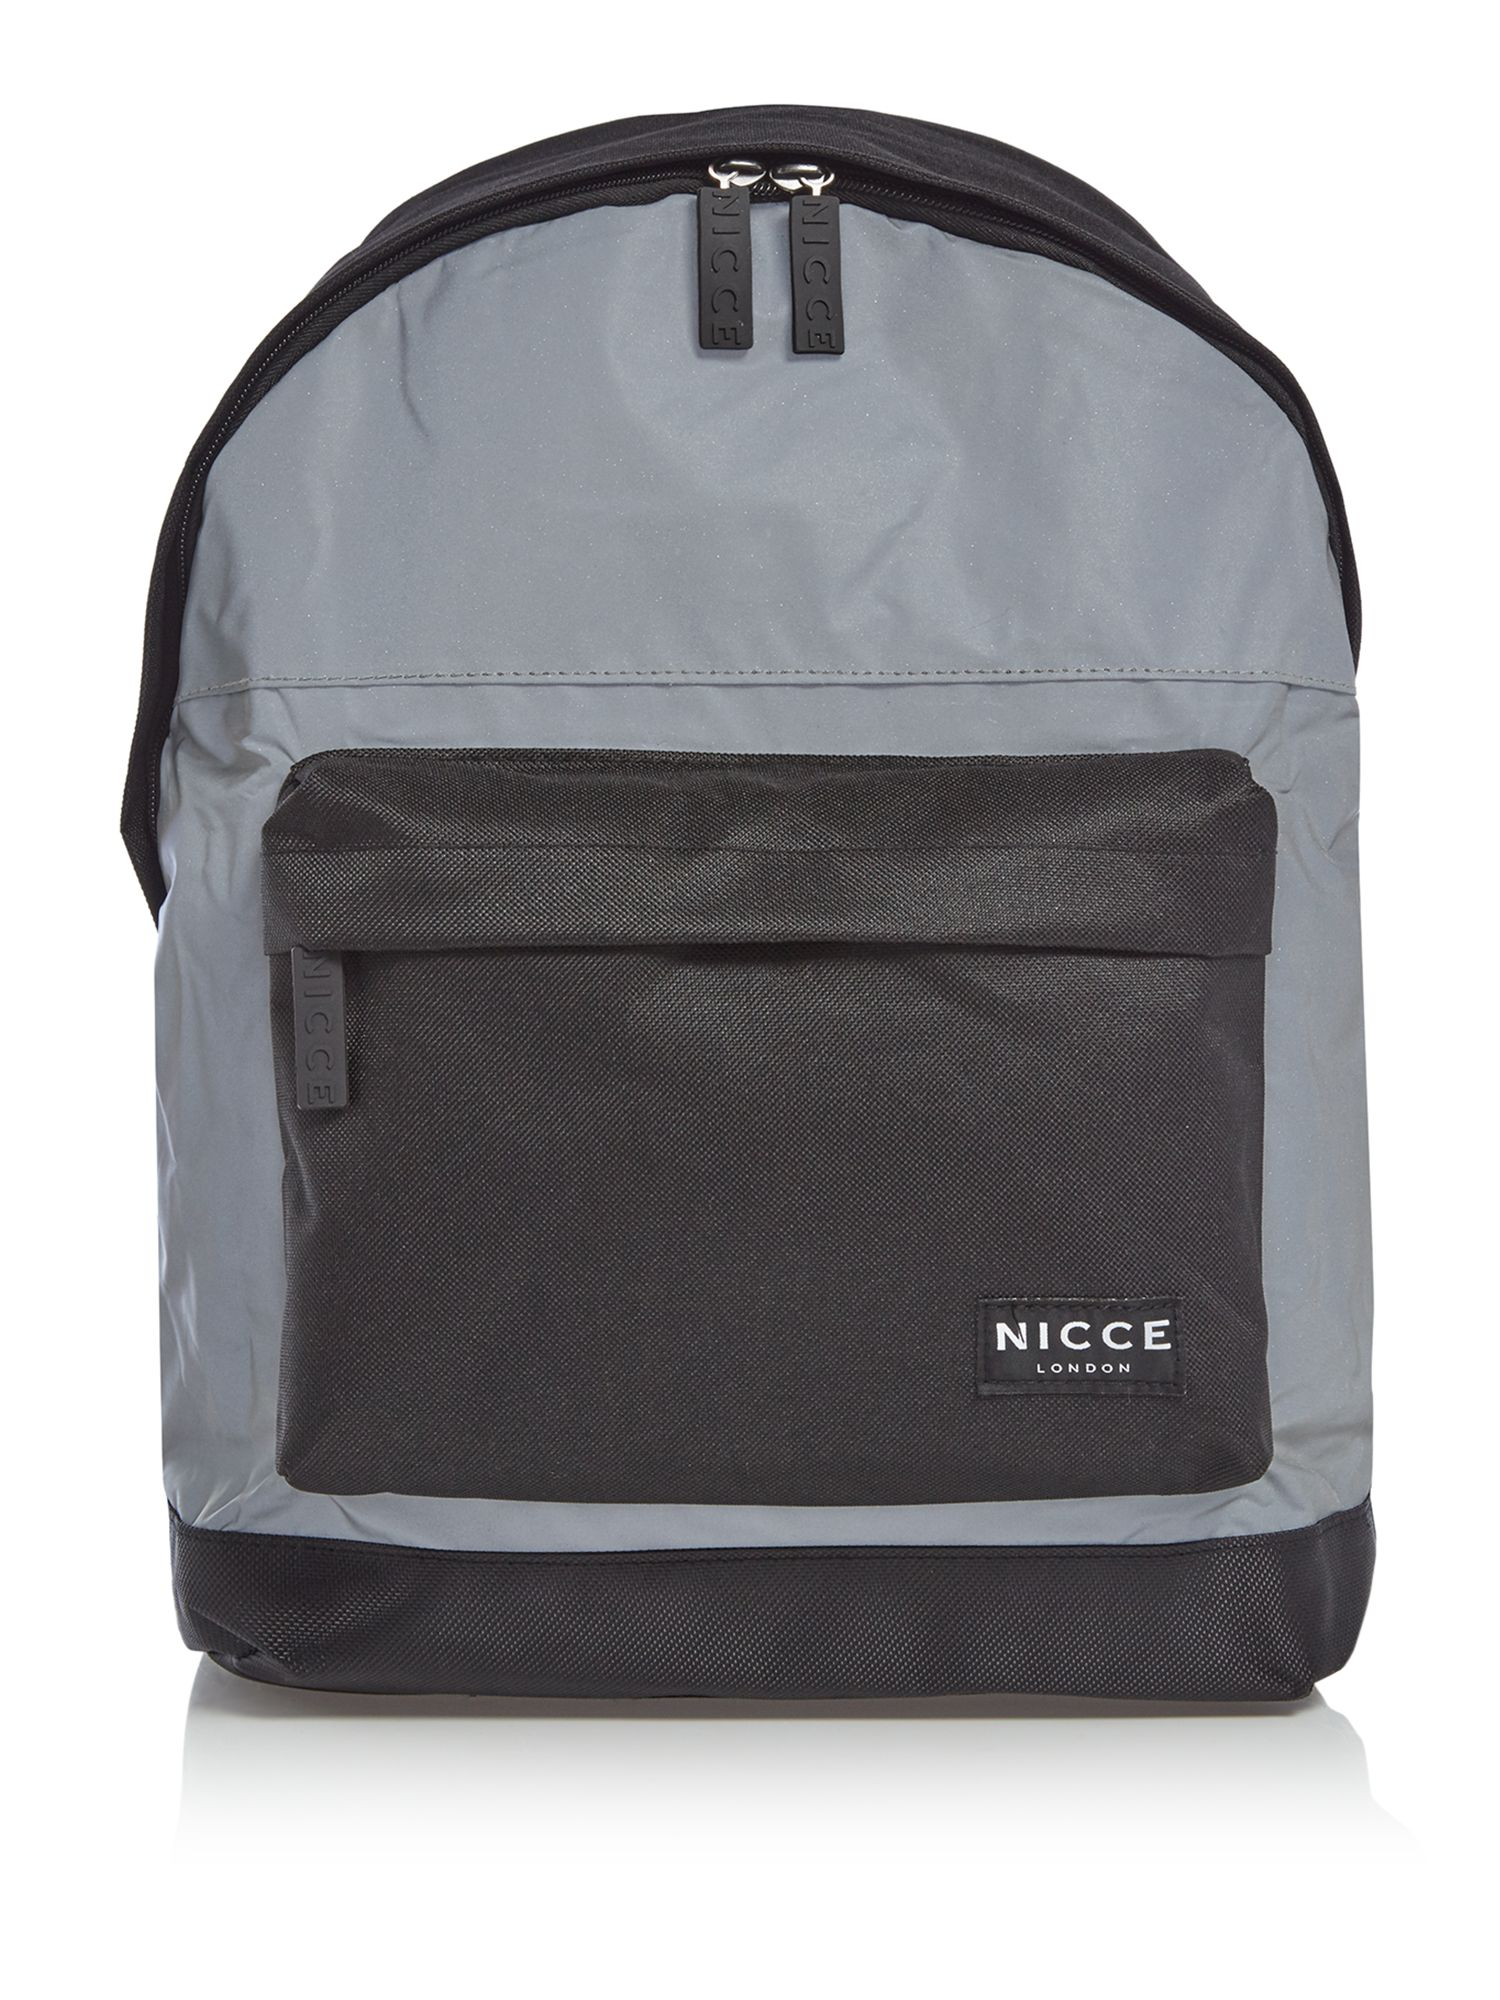 Nicce Reflective Core Backpack, Black